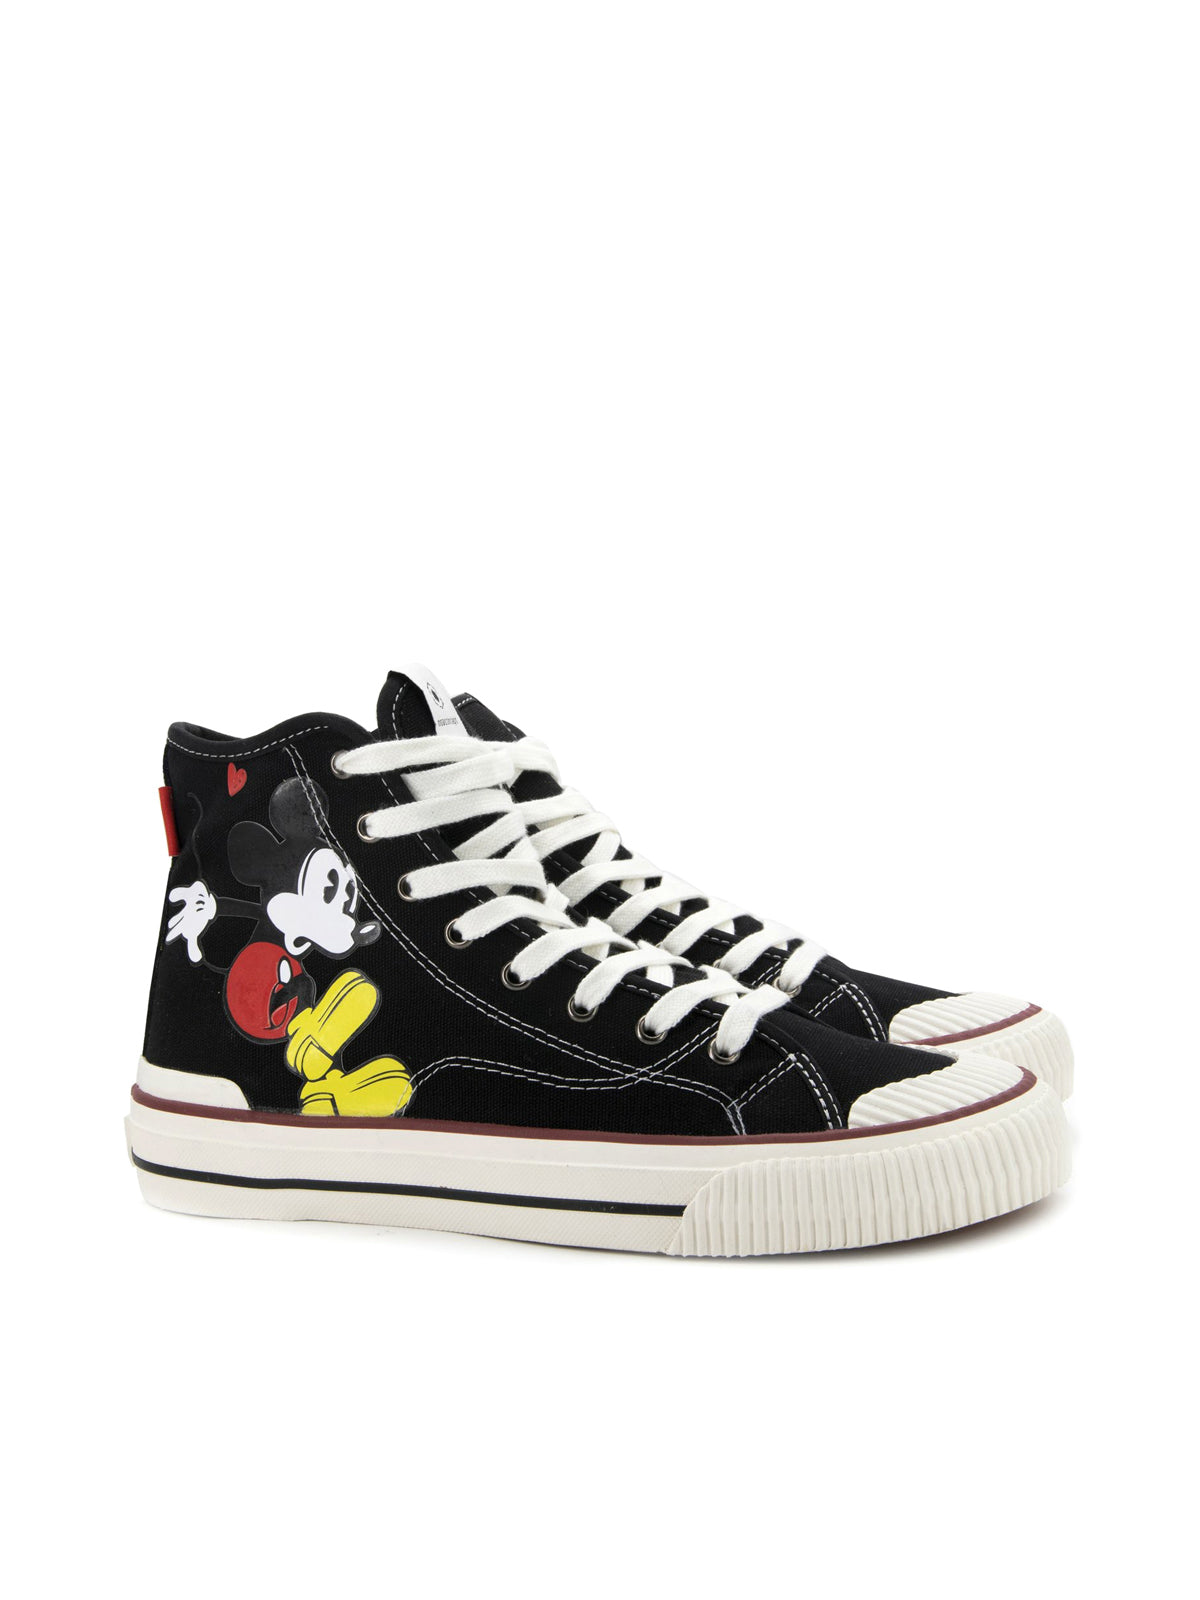 sneakers HIGH-TOP MICKEY MOUSE BLACK